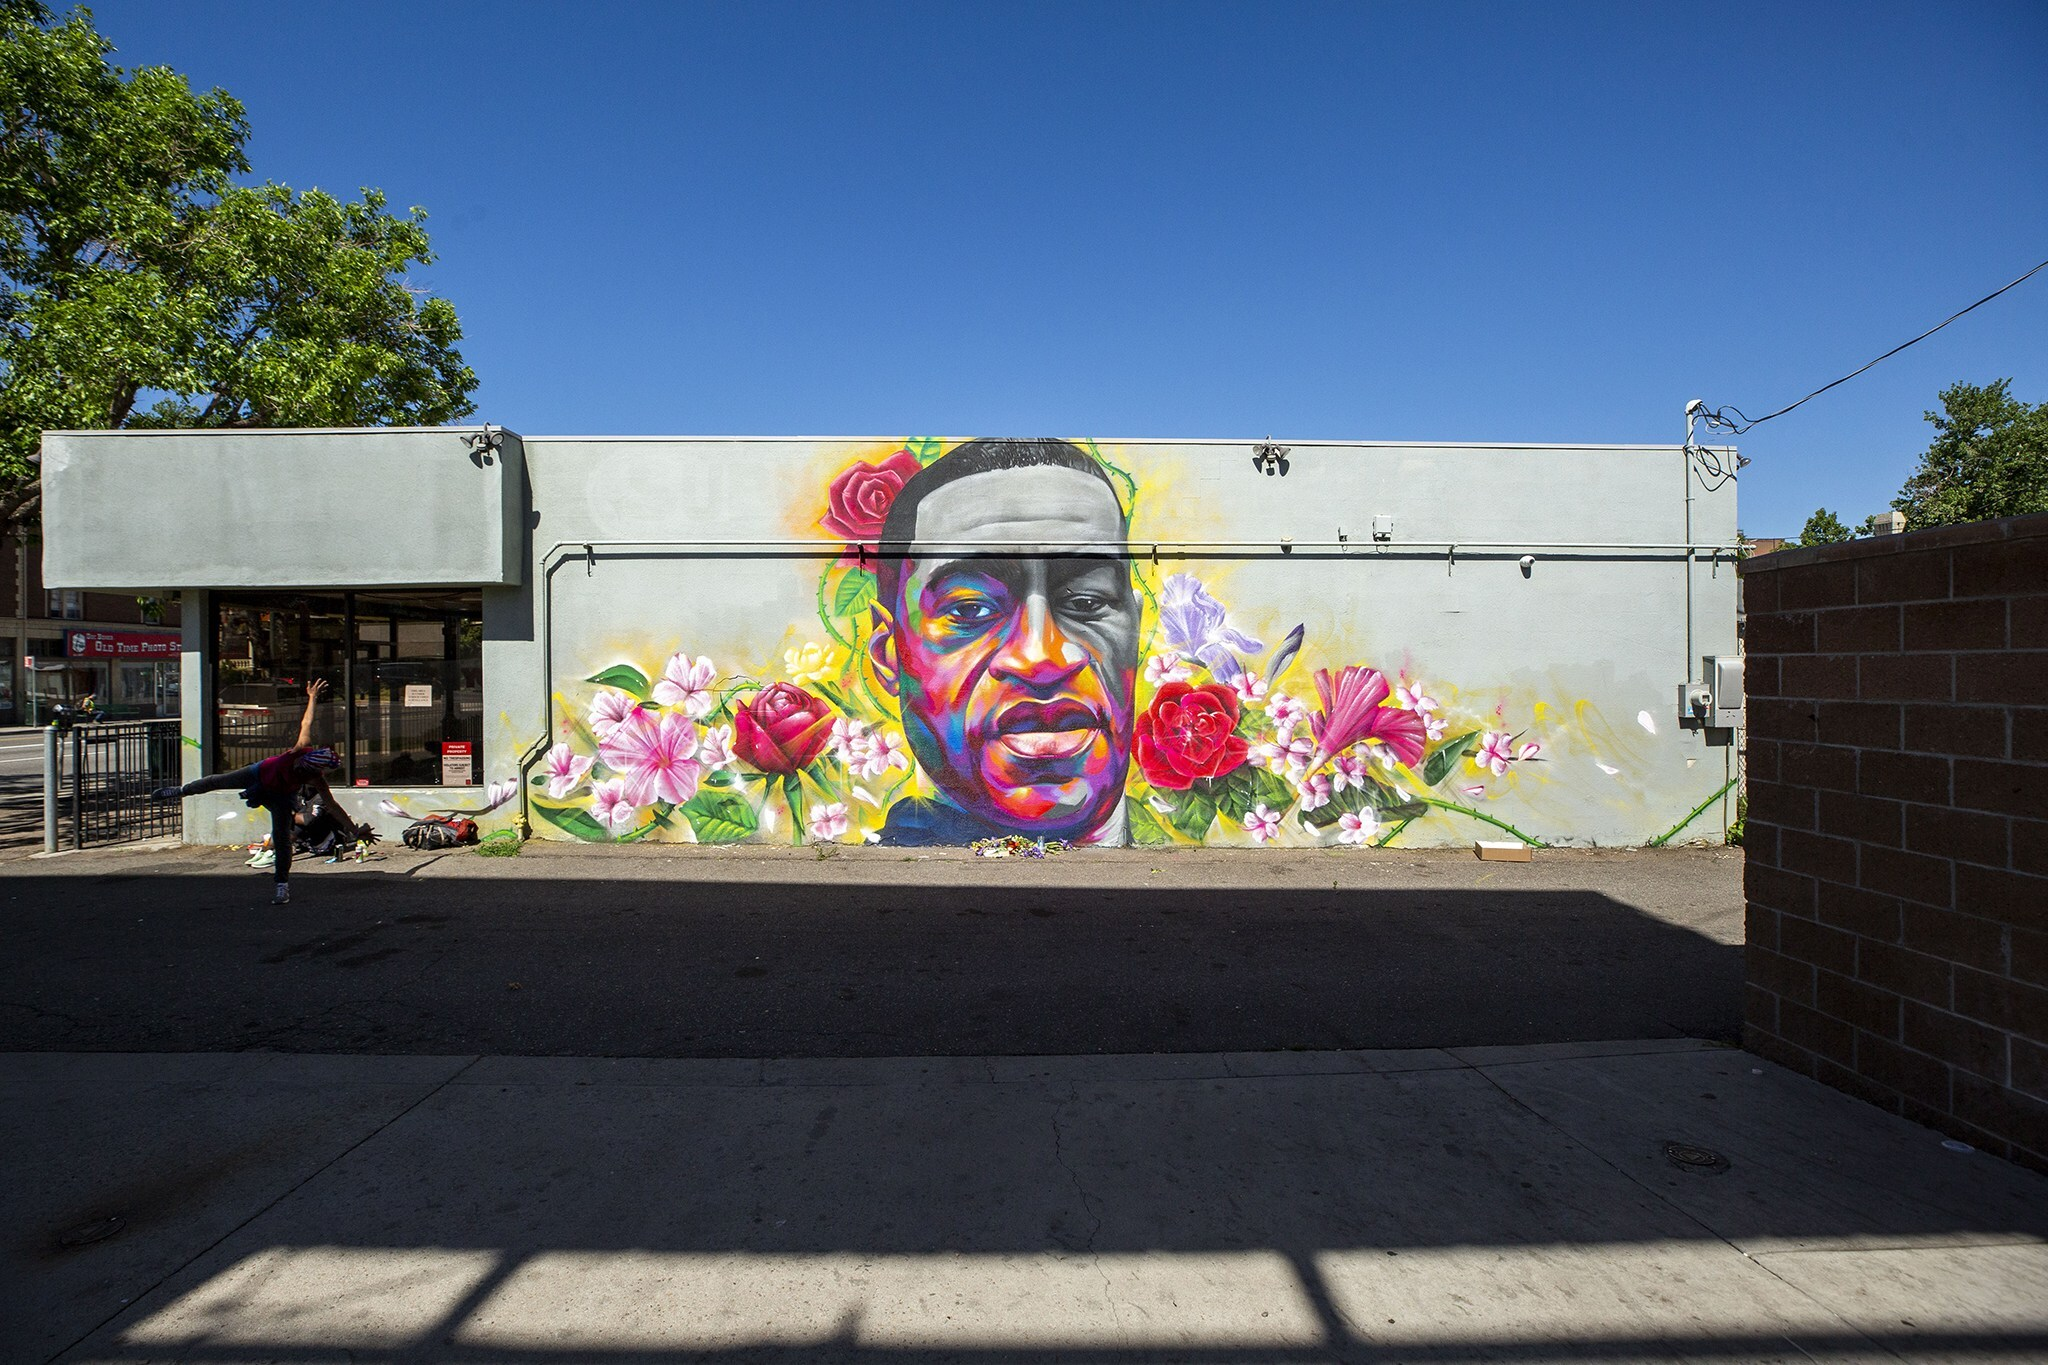 Artists Detour and Hiero painted a mural of George Floyd on the side of a Ready Temporary Services building at High Street and Colfax Avenue. June 7, 2020.